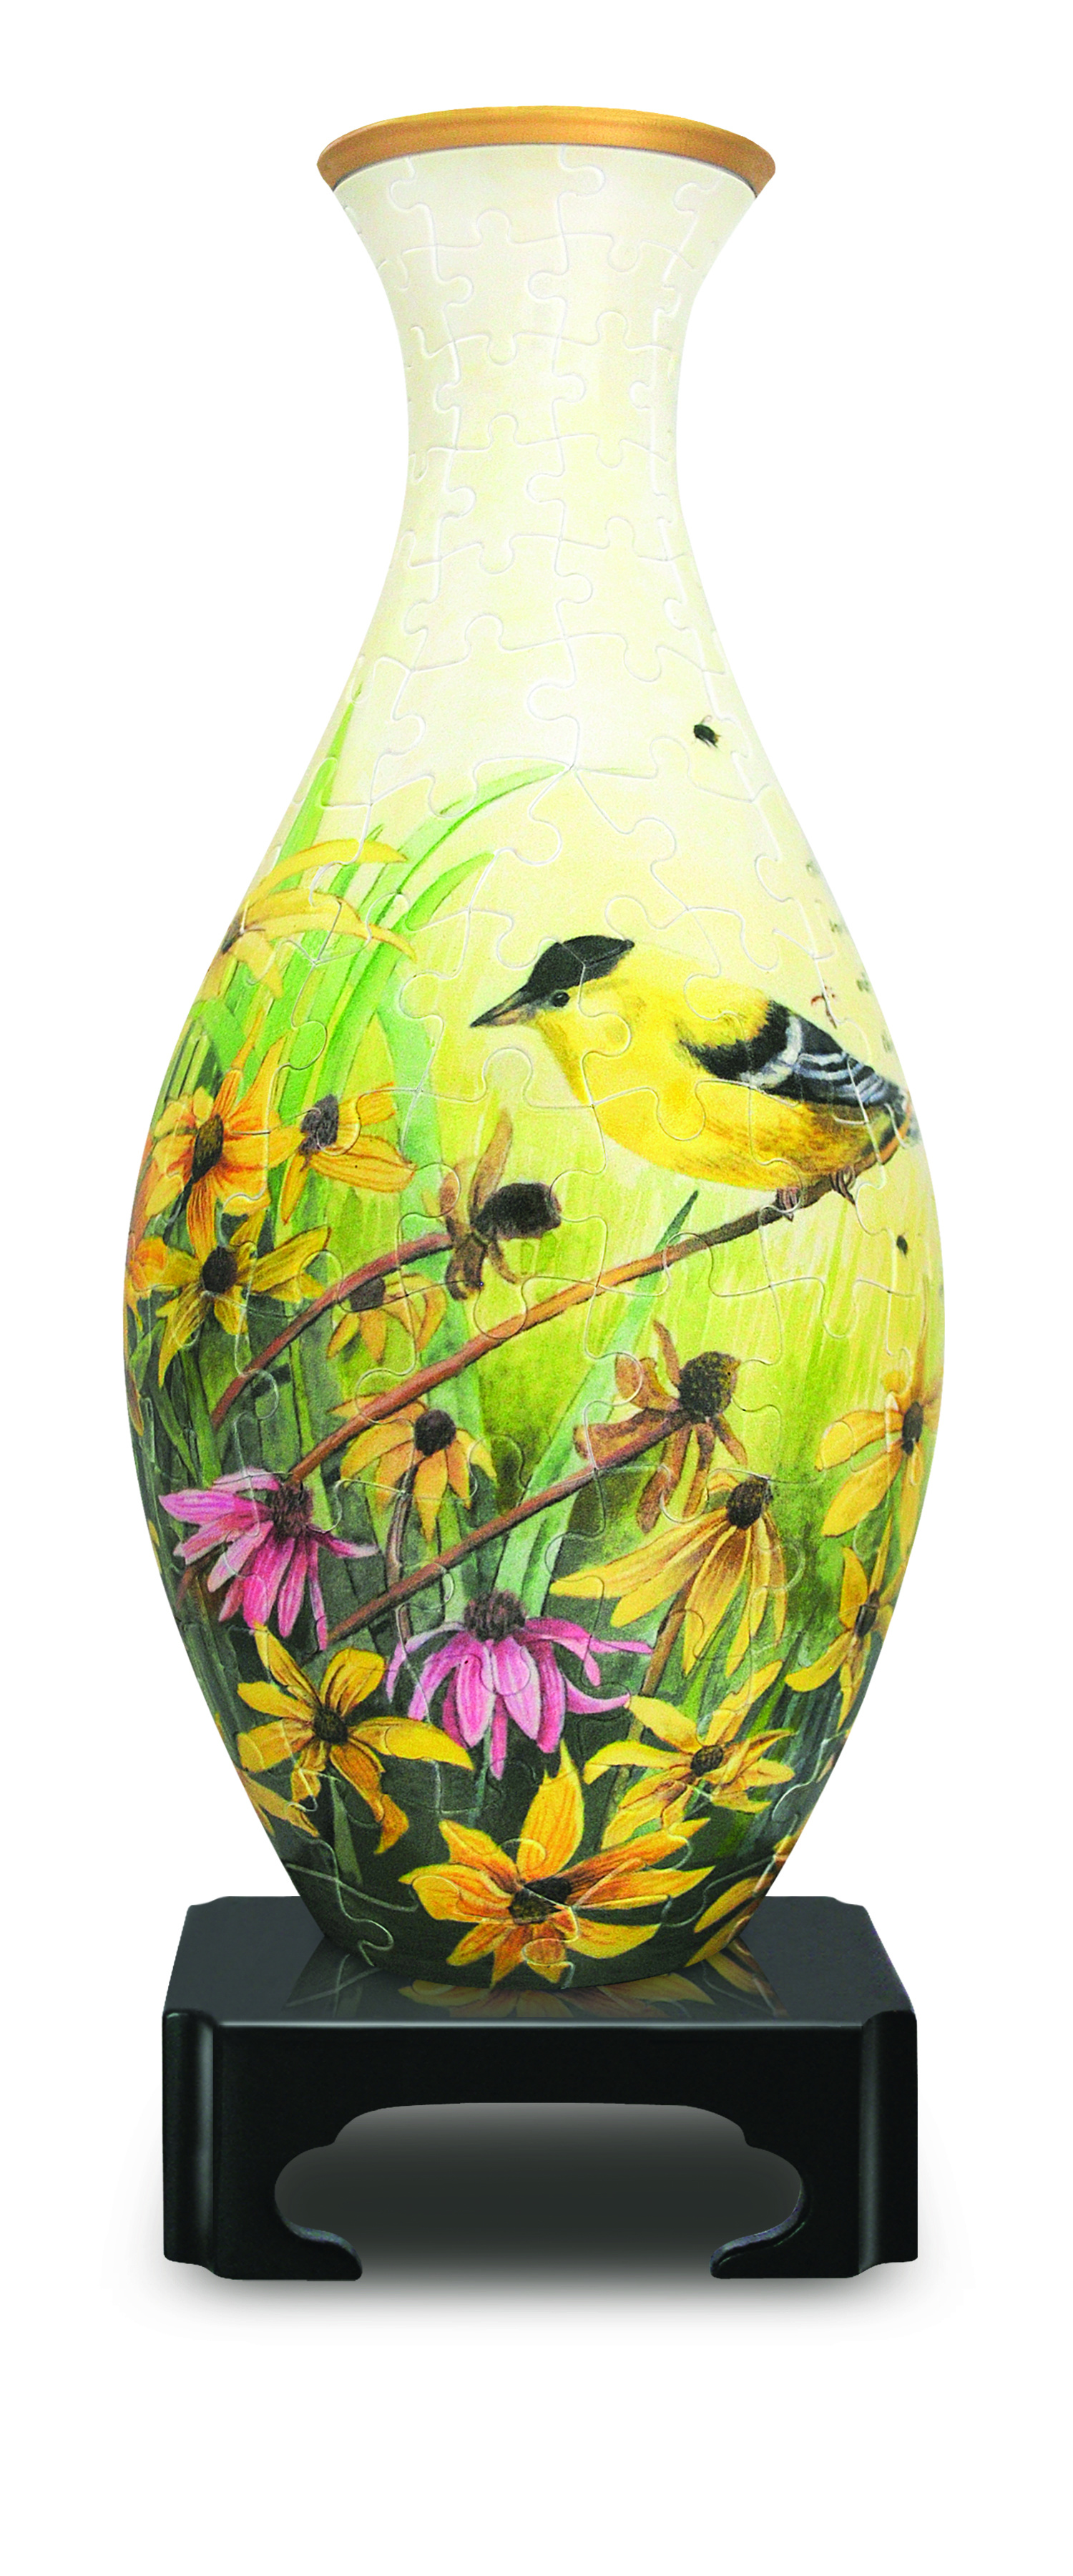 31014_Lifestyle_Vase_Goldfinch